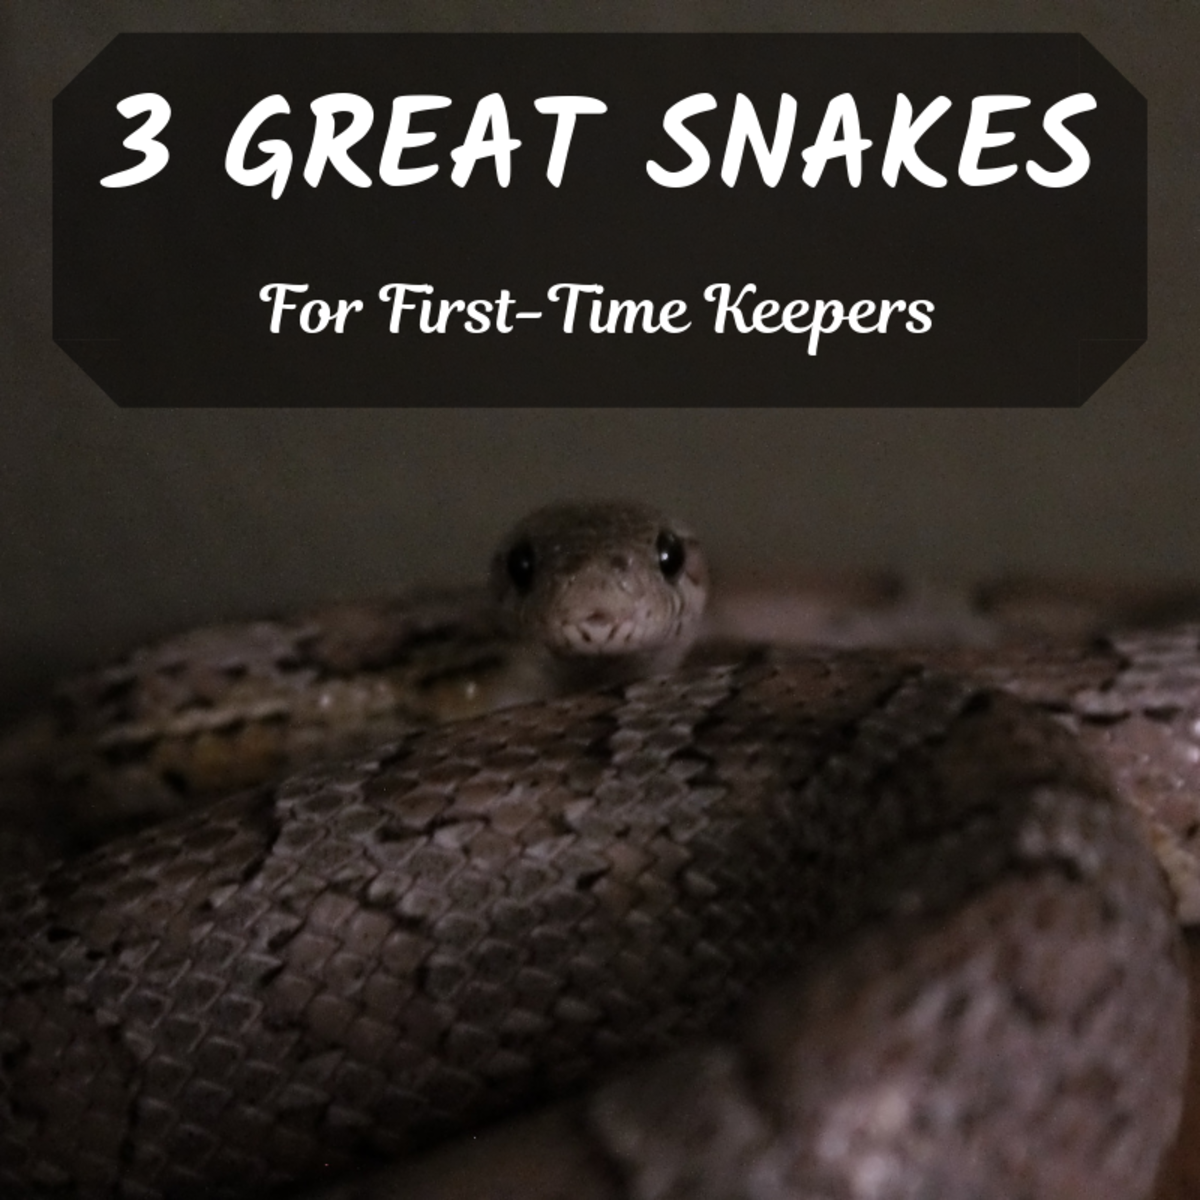 Corn Snakes, Ball Pythons, and Red Boas—Good Beginner Snakes?